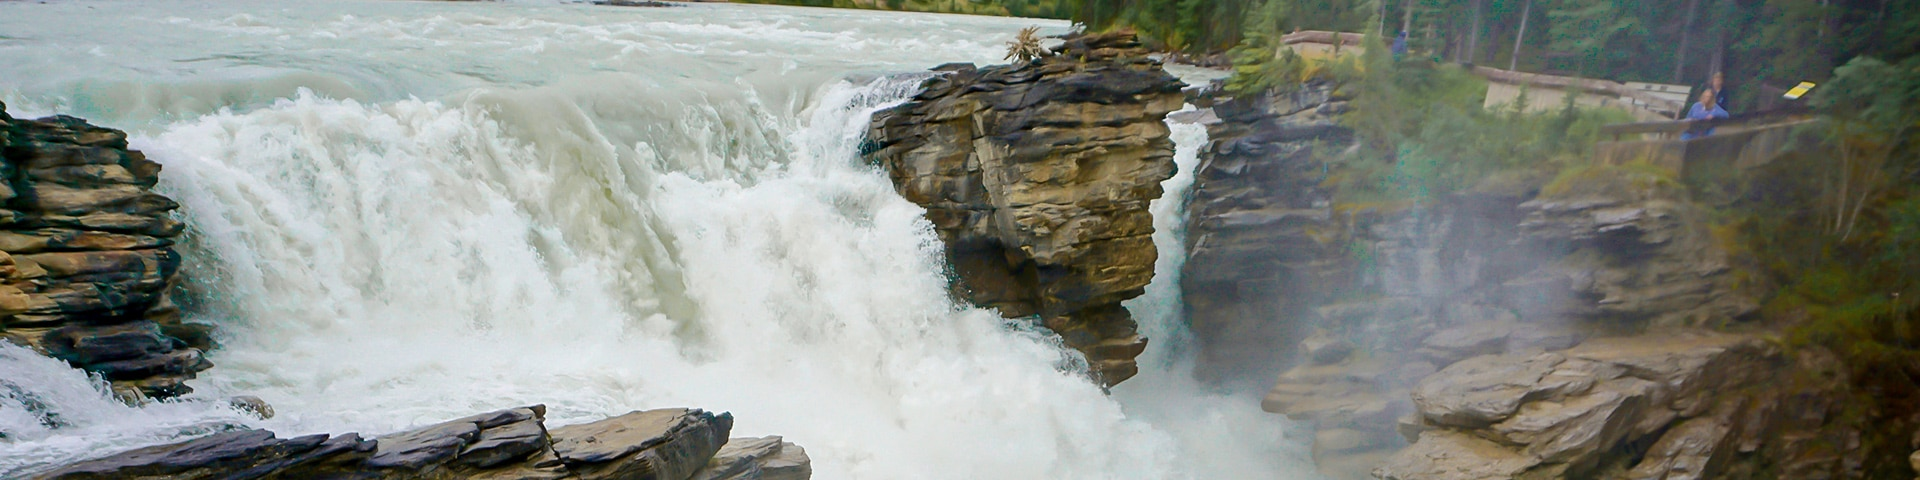 Views from the Athabasca Falls hike in Jasper National Park